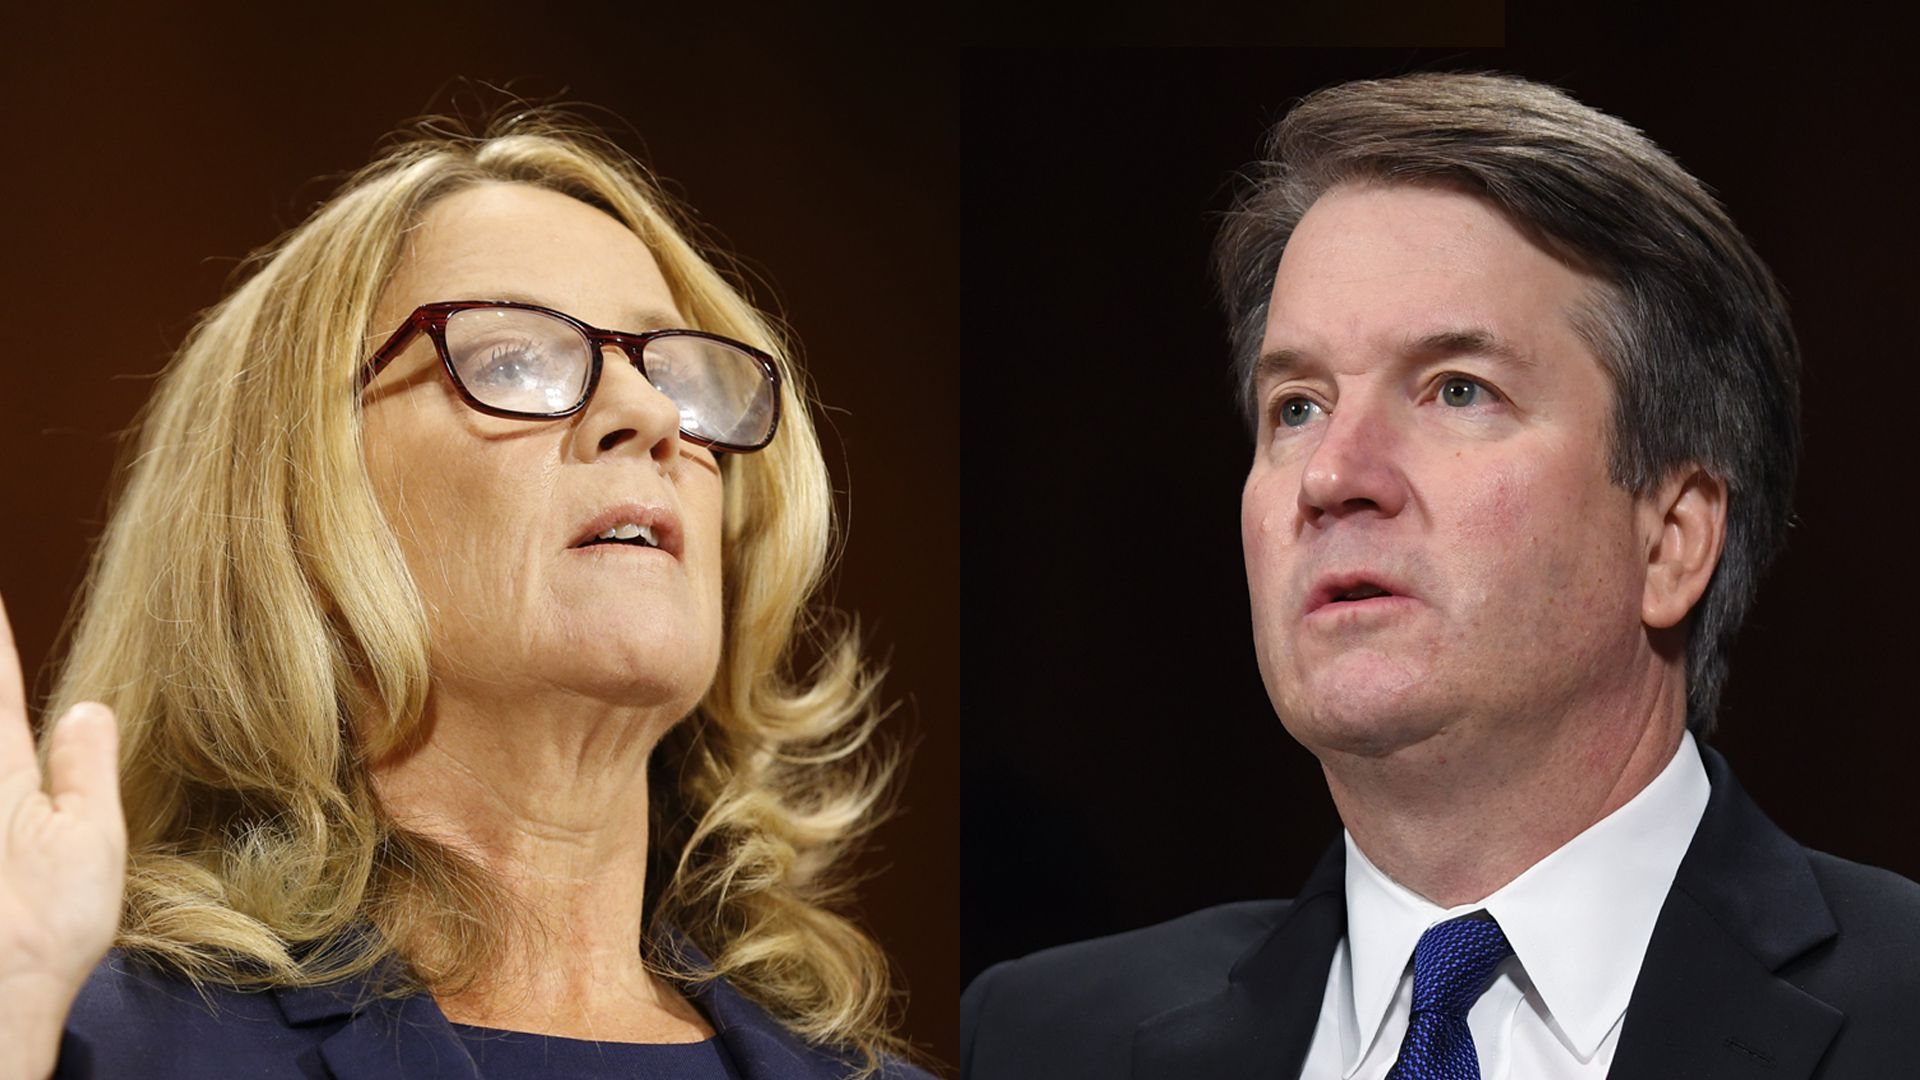 A split image of Christine Blasey Ford raising her hand to swear under oath and Brett Kavanaugh speaking with a serious expression